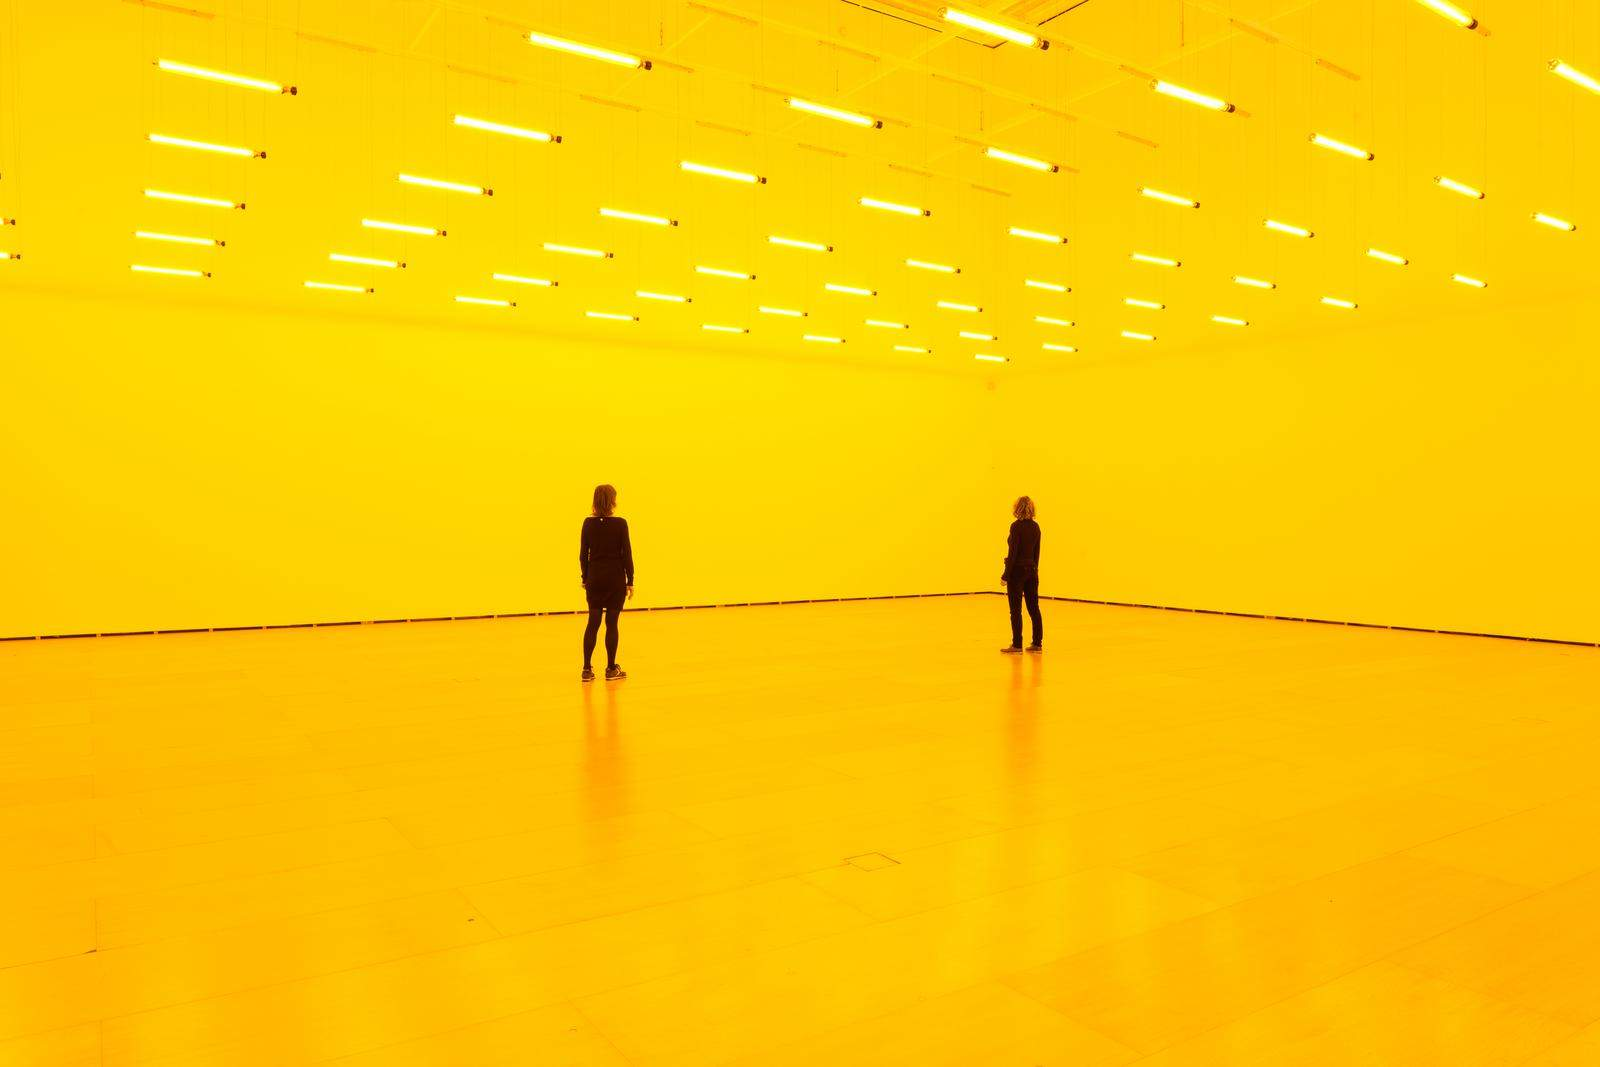 Room for one colour, 1997. Olafur Eliasson: En la vida real - Guggenheim Bilbao